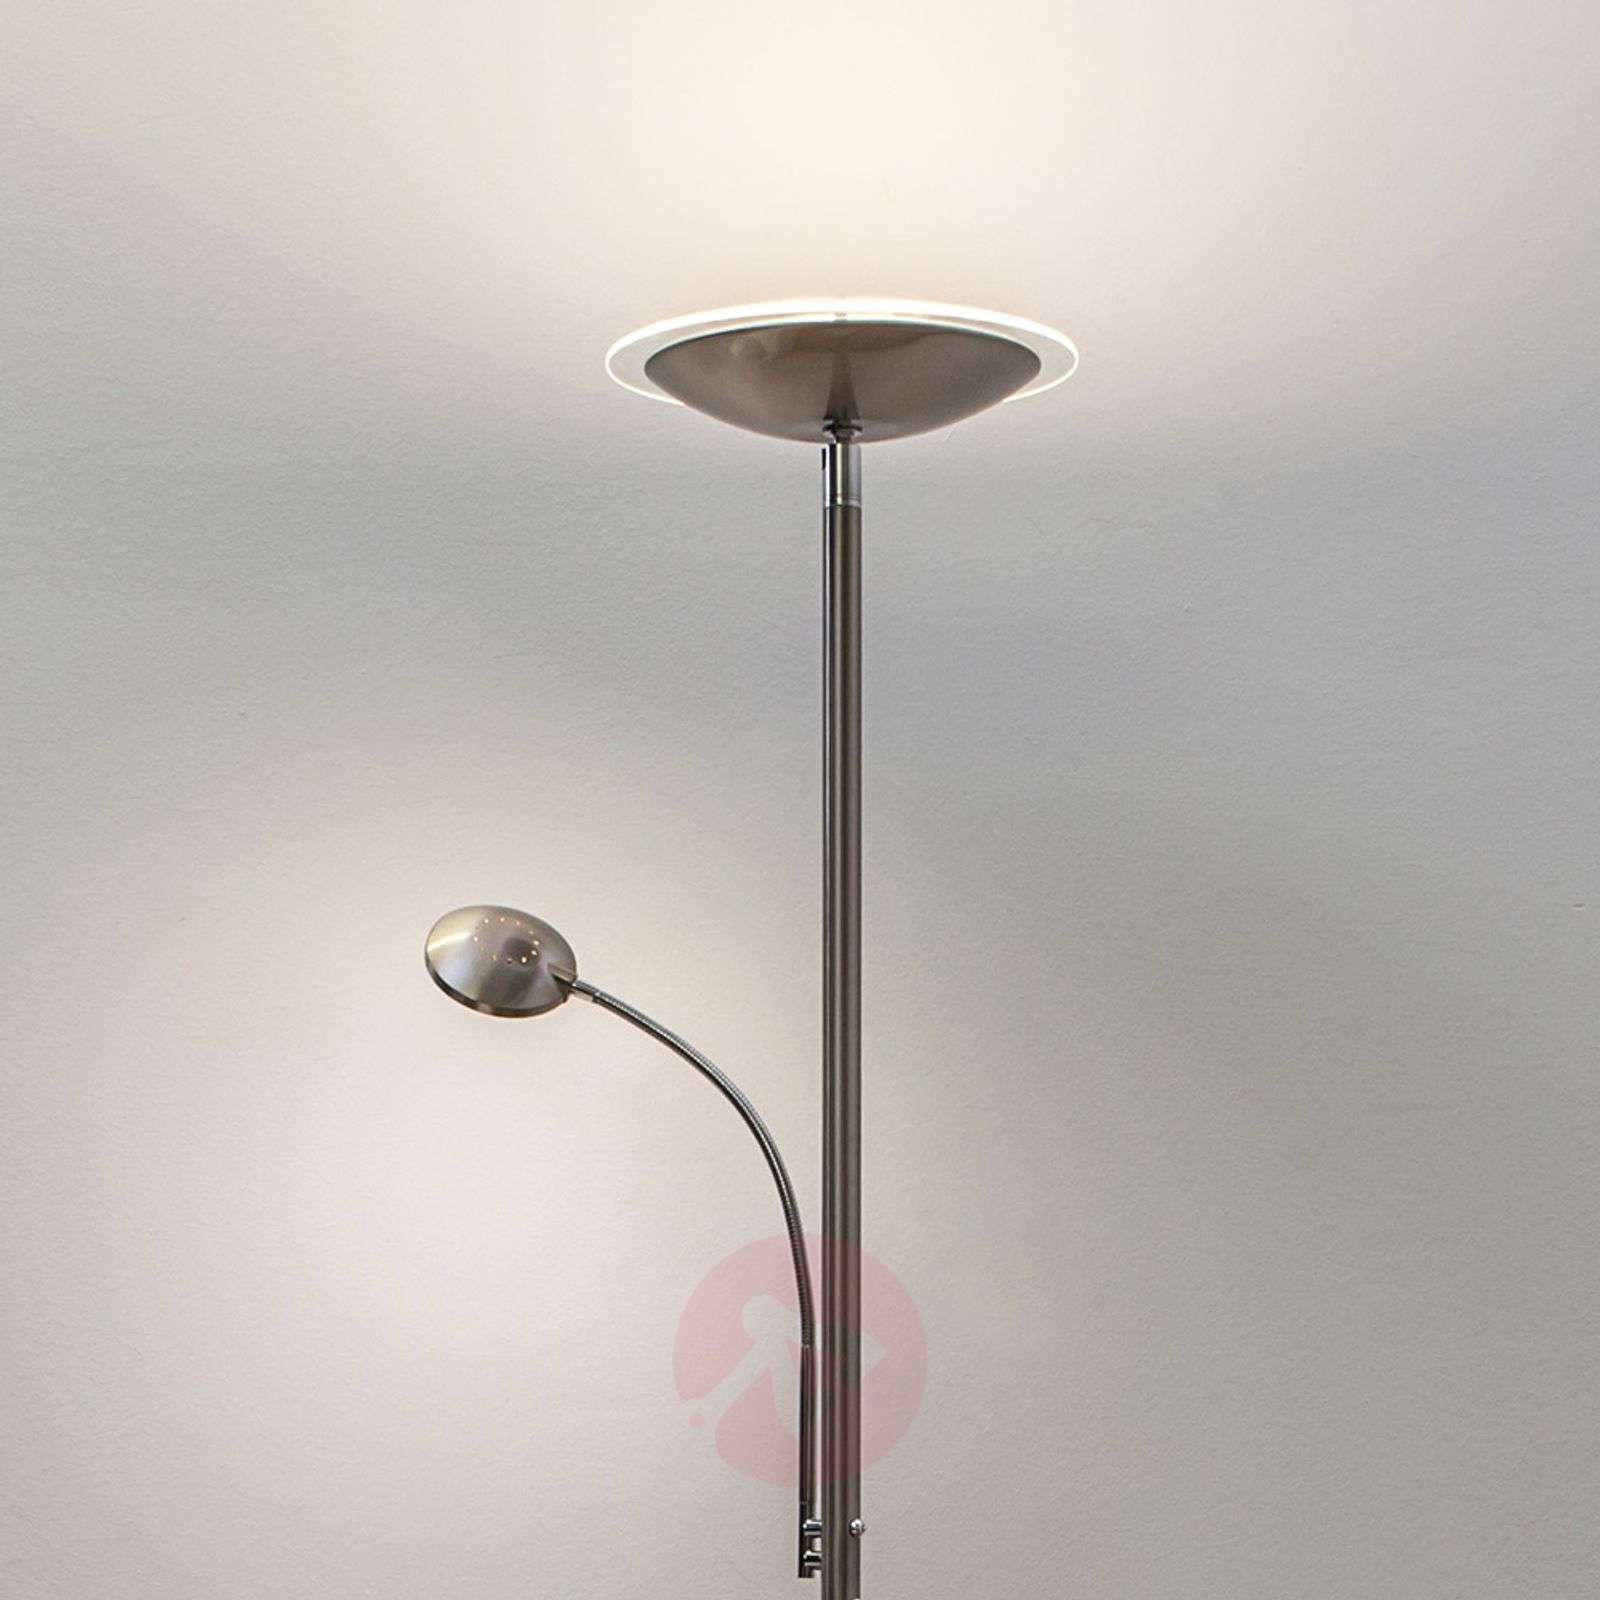 Lampadaire à éclairage indirect LED Malea nickel-9620005-01